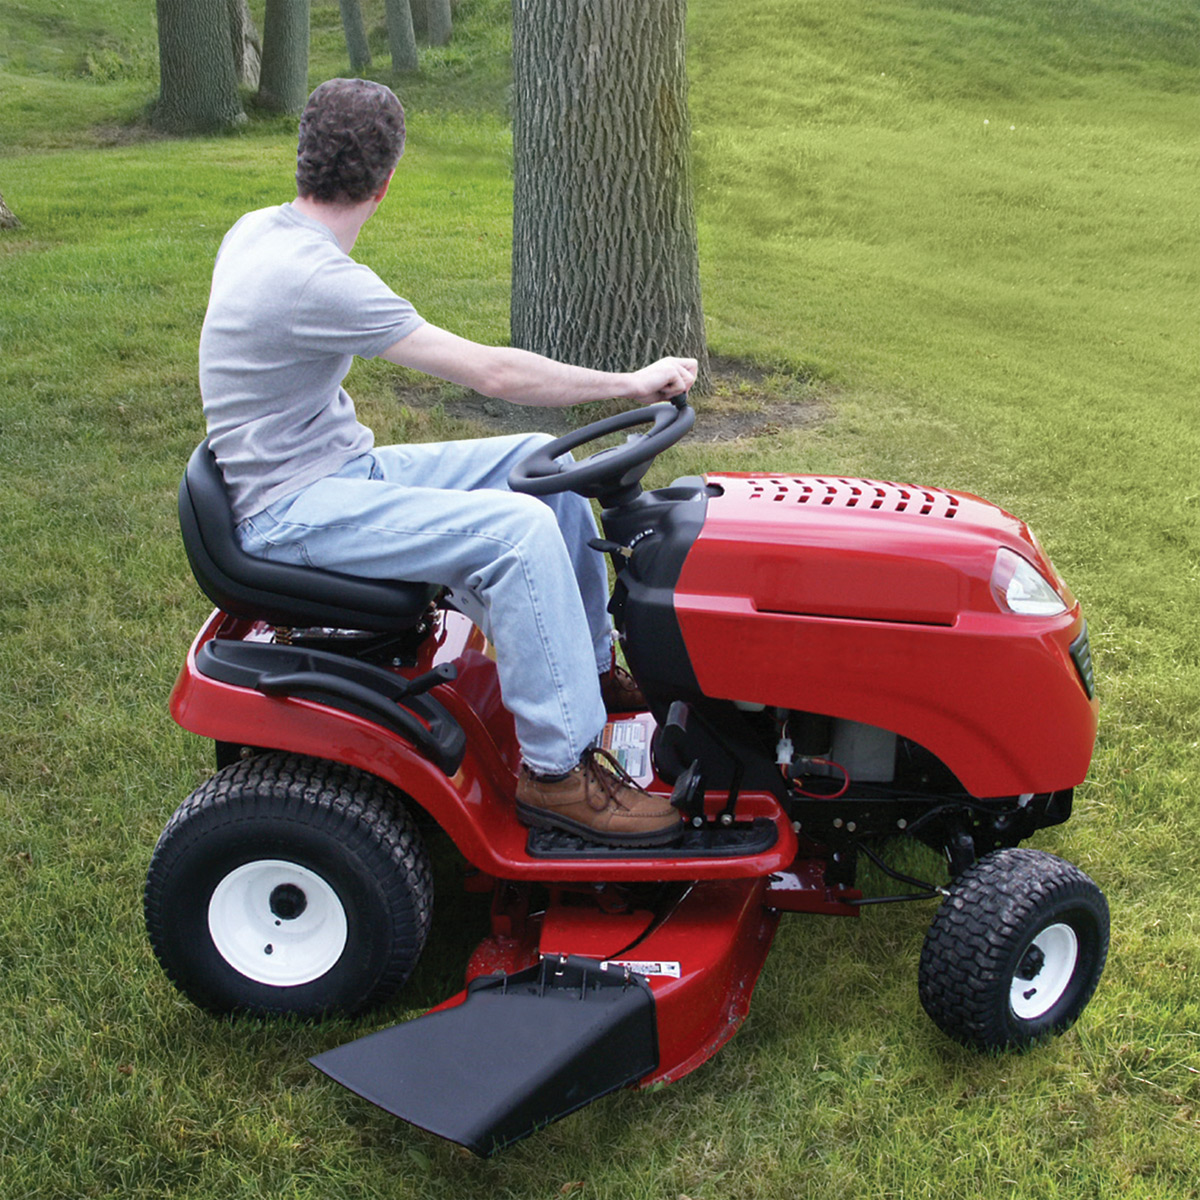 Easy Rider Lawn Mower Steering Knob being used on a red riding lawnmower